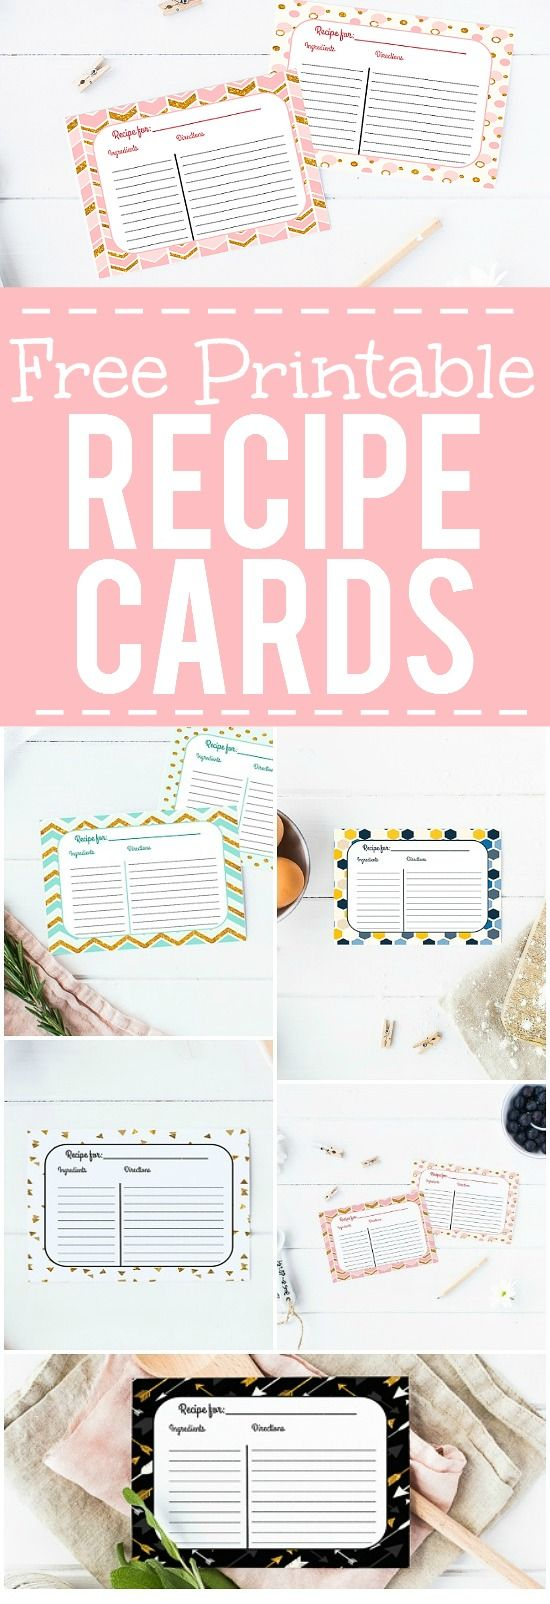 Free Printable Recipe Cards - Keep all of your favorite recipes safe and…